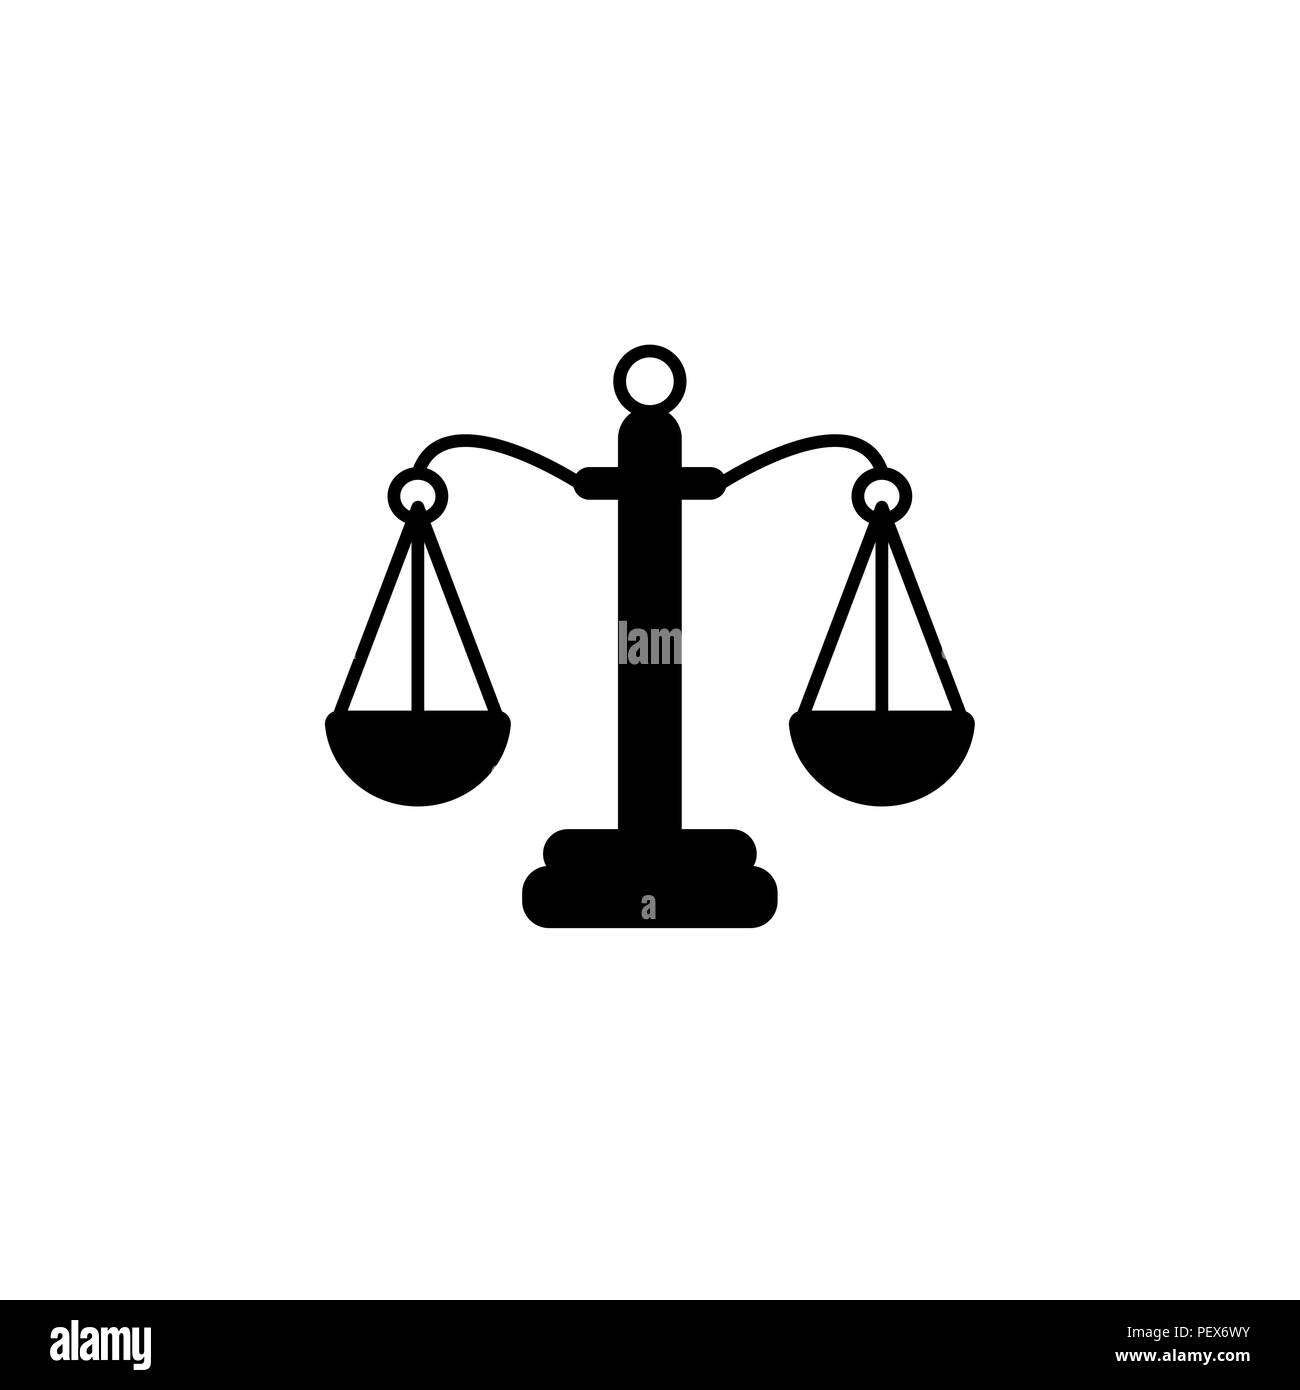 Pictograph of justice scales vector illustration black on white background